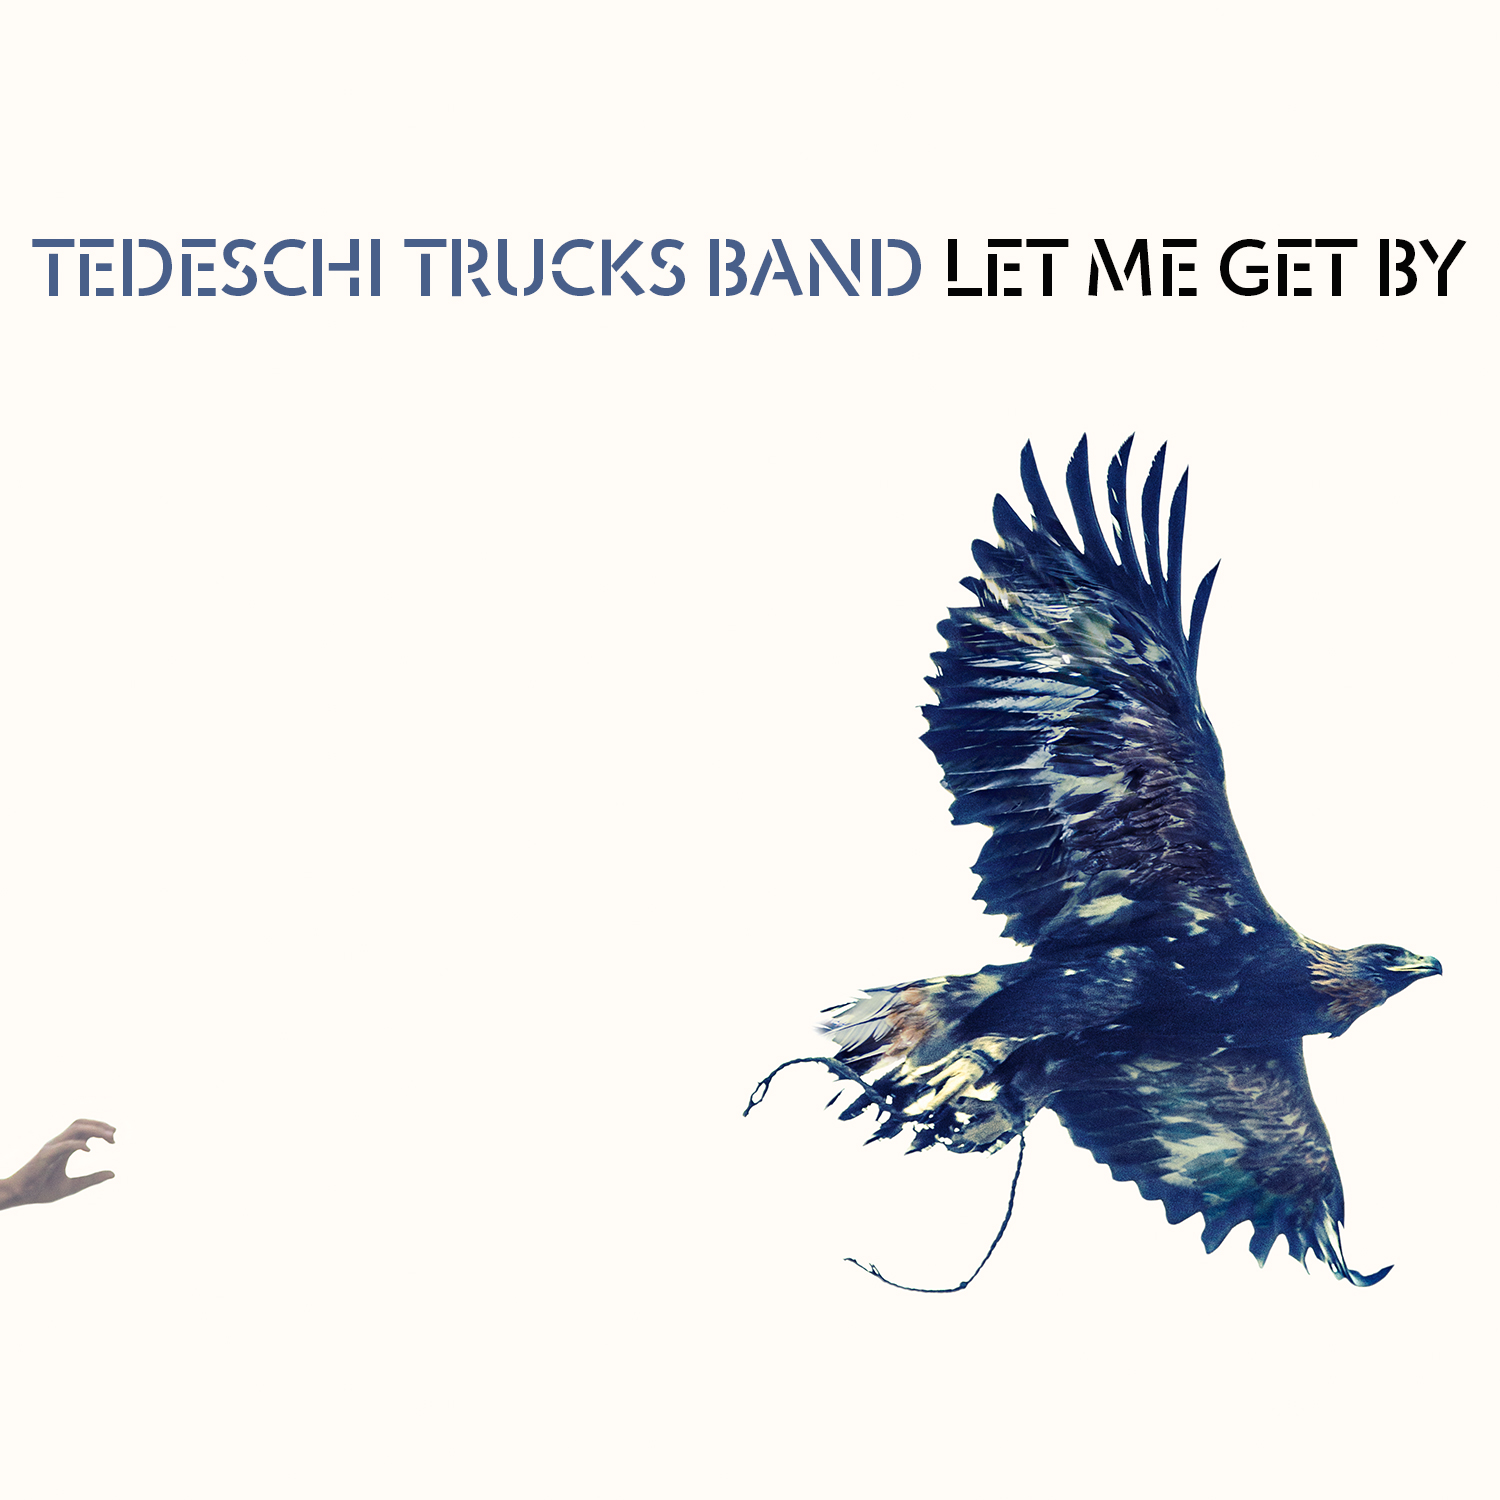 Let Me Get By - Tedeschi Trucks Band